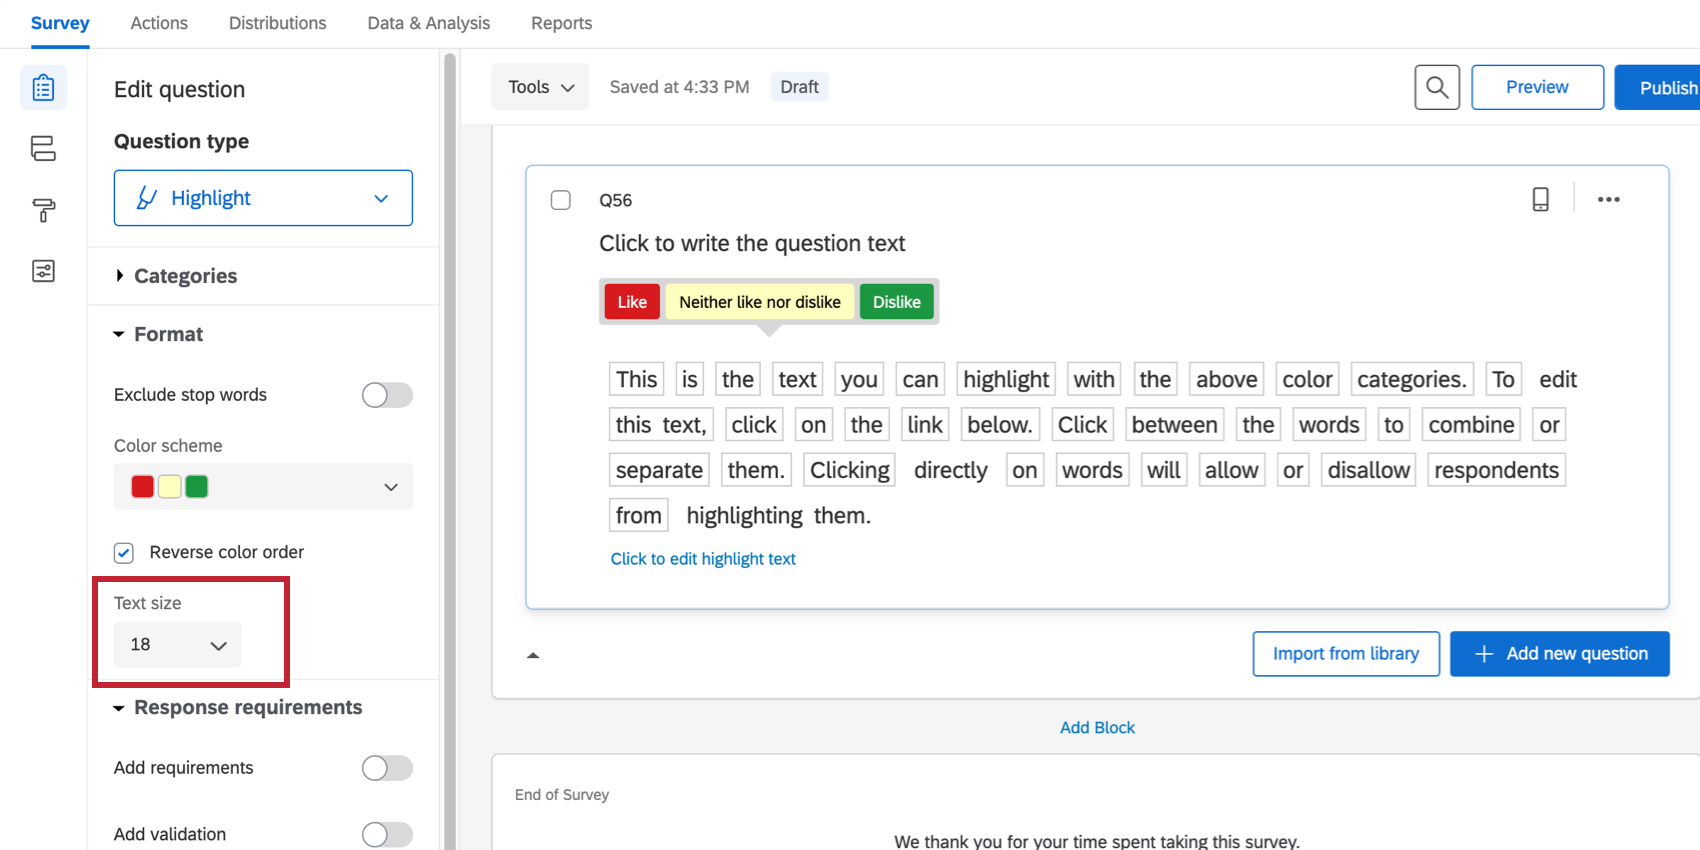 Text size is selected and adjusted